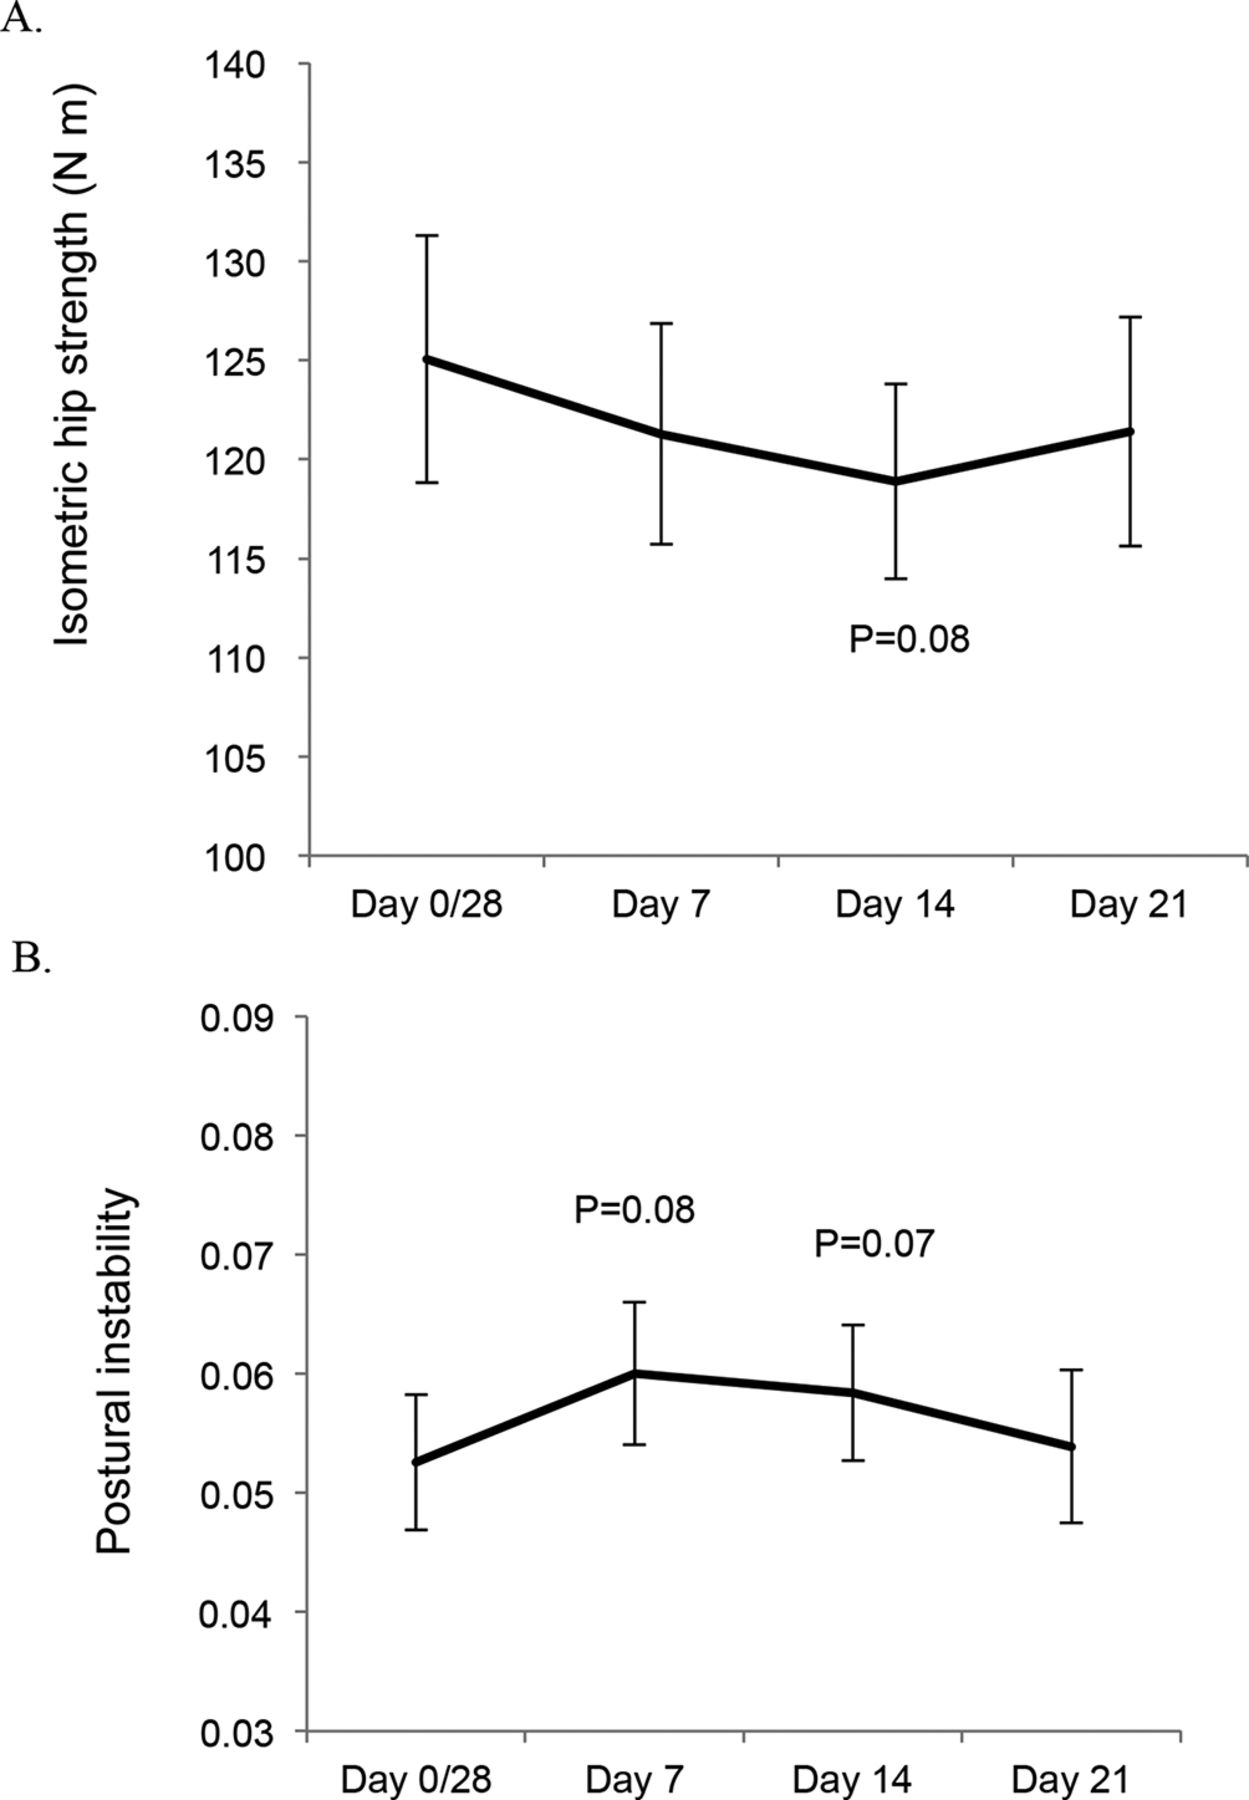 Does ovulation affect performance in tennis players?   BMJ